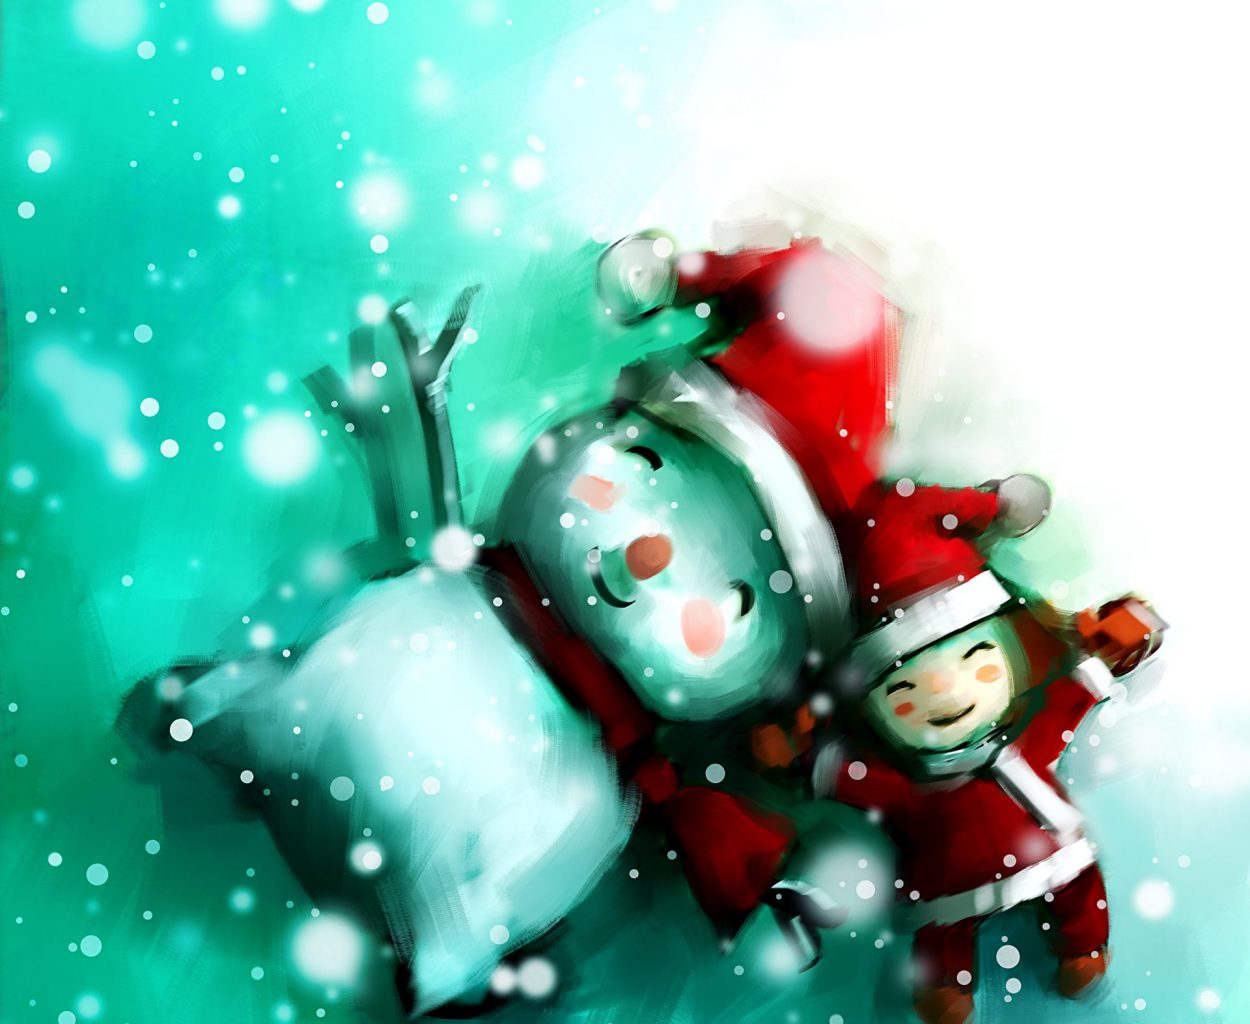 digital painting of cute girl with snowman in wintertime, oil on canvas texture